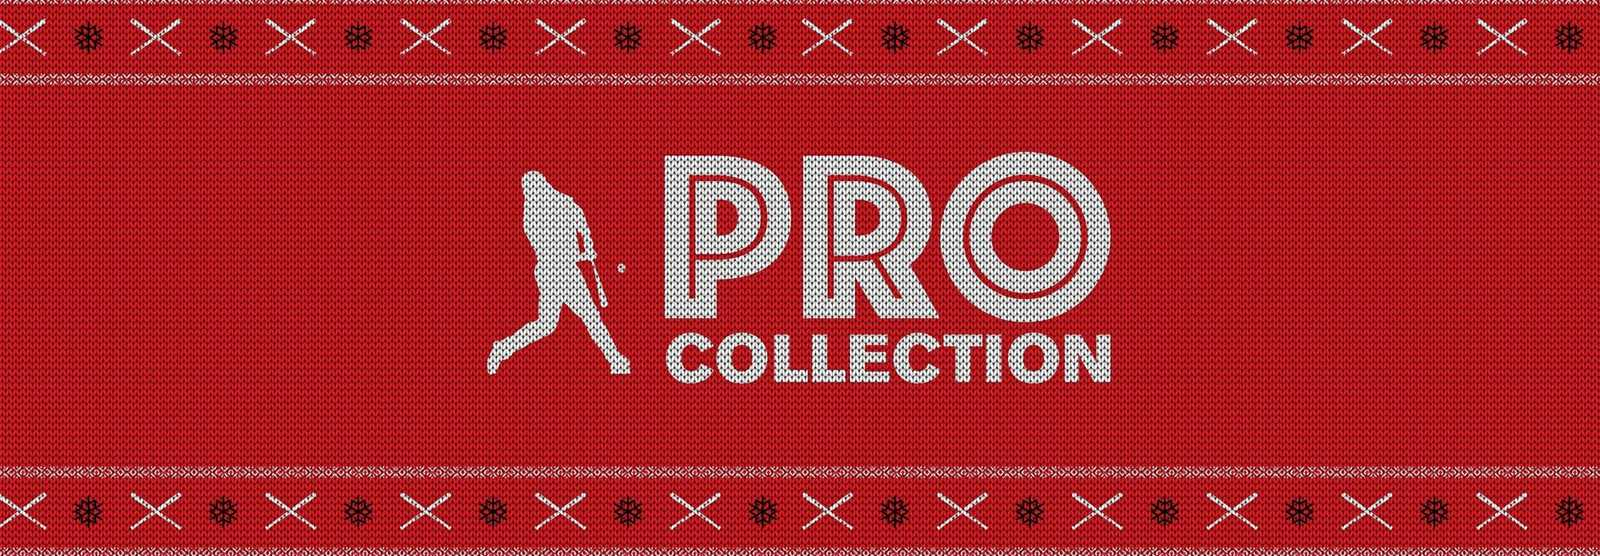 baseball-pro-collection-gift-guide